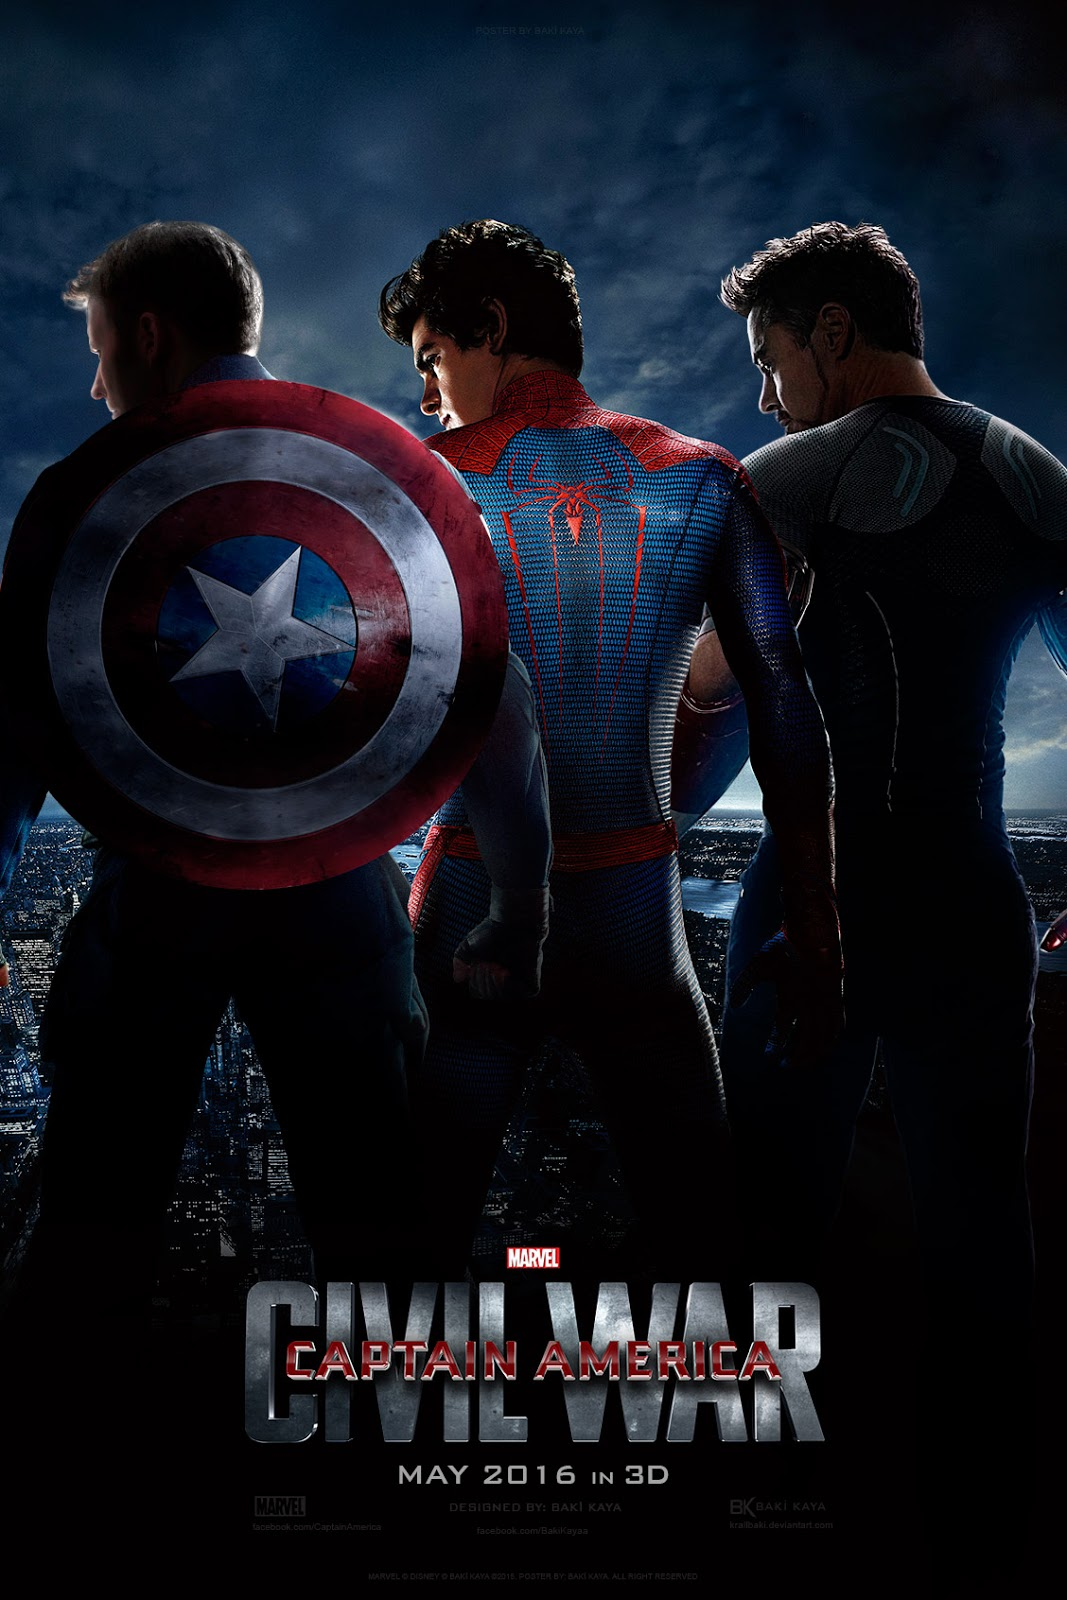 To Know More About Captain America Civil War 2016 And Its Cast